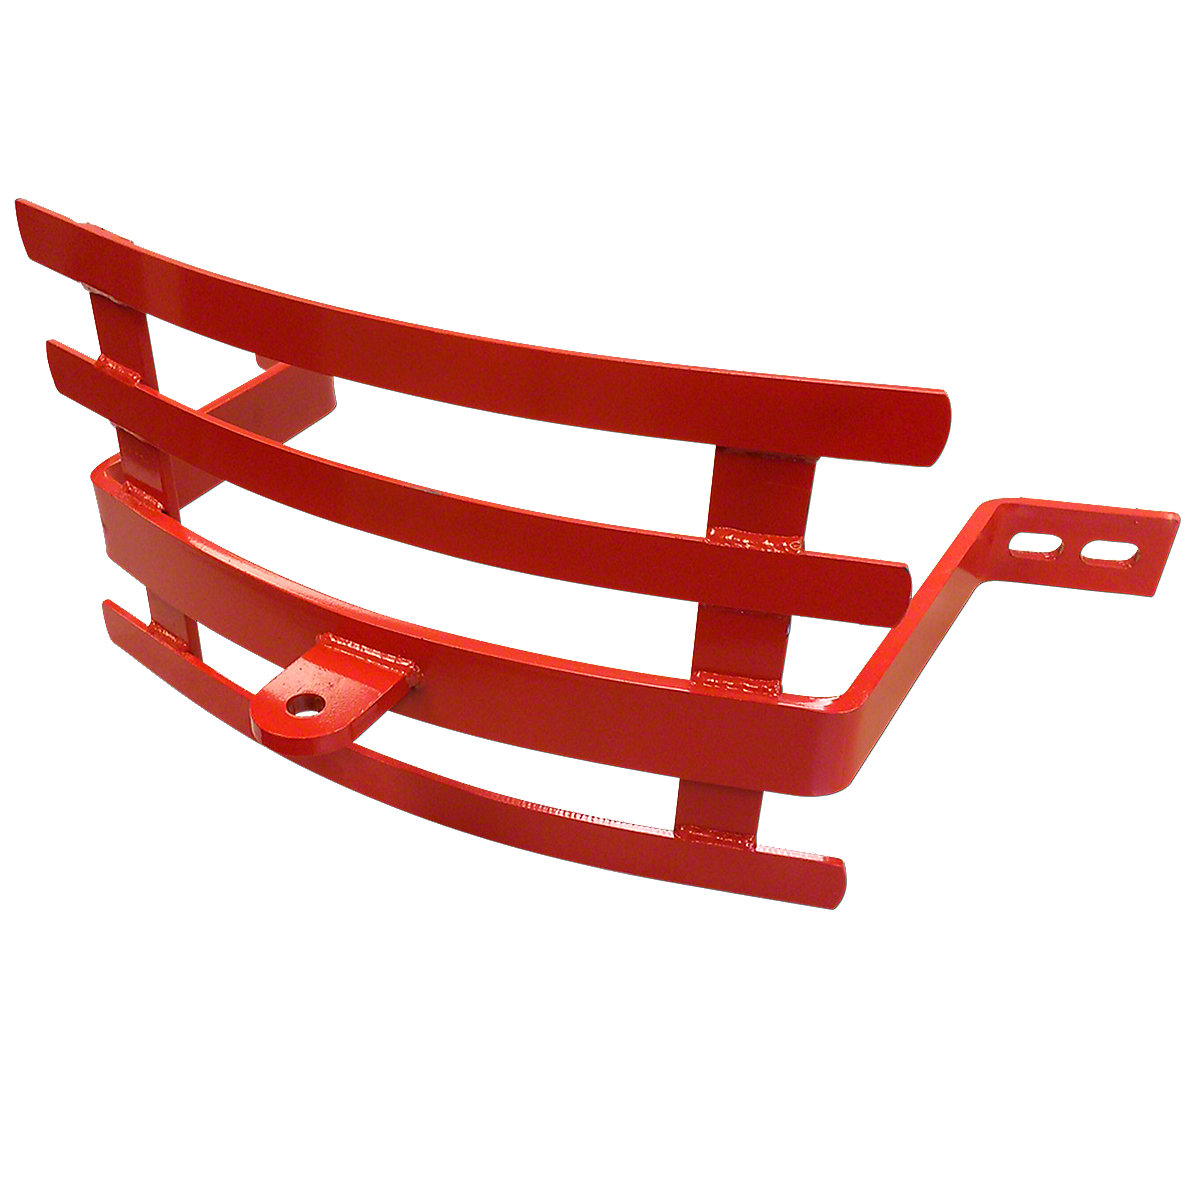 FDS031 Heavy Duty Ford Front Bumper -- Fits 8N, 9N, 2N, NAA, 600, 800 & More!